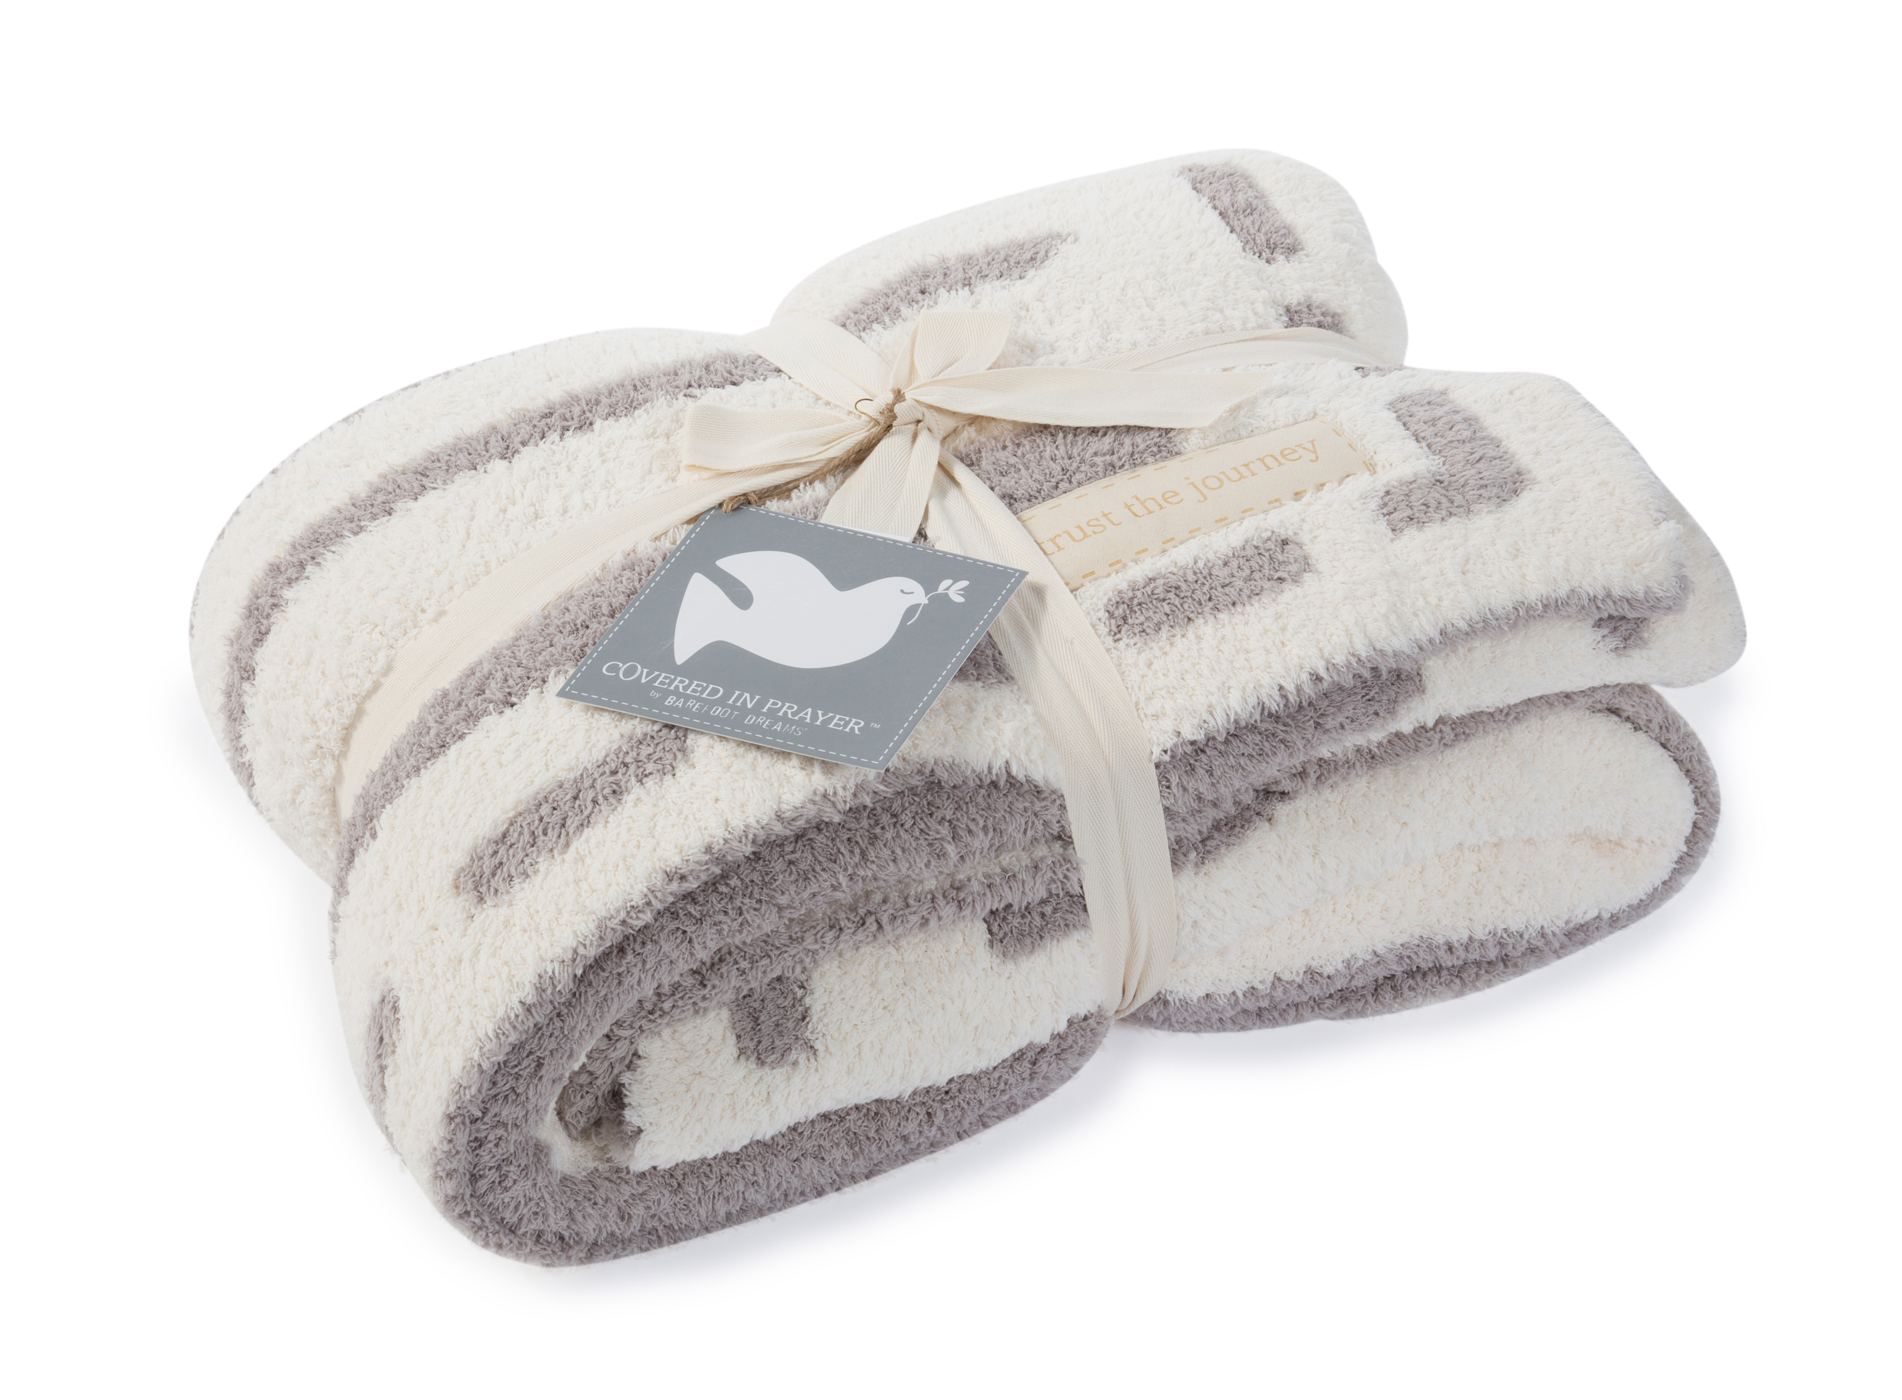 Barefoot Dreams Cozychic Covered In Prayers Throw Size 54 X 72 Mariposahill